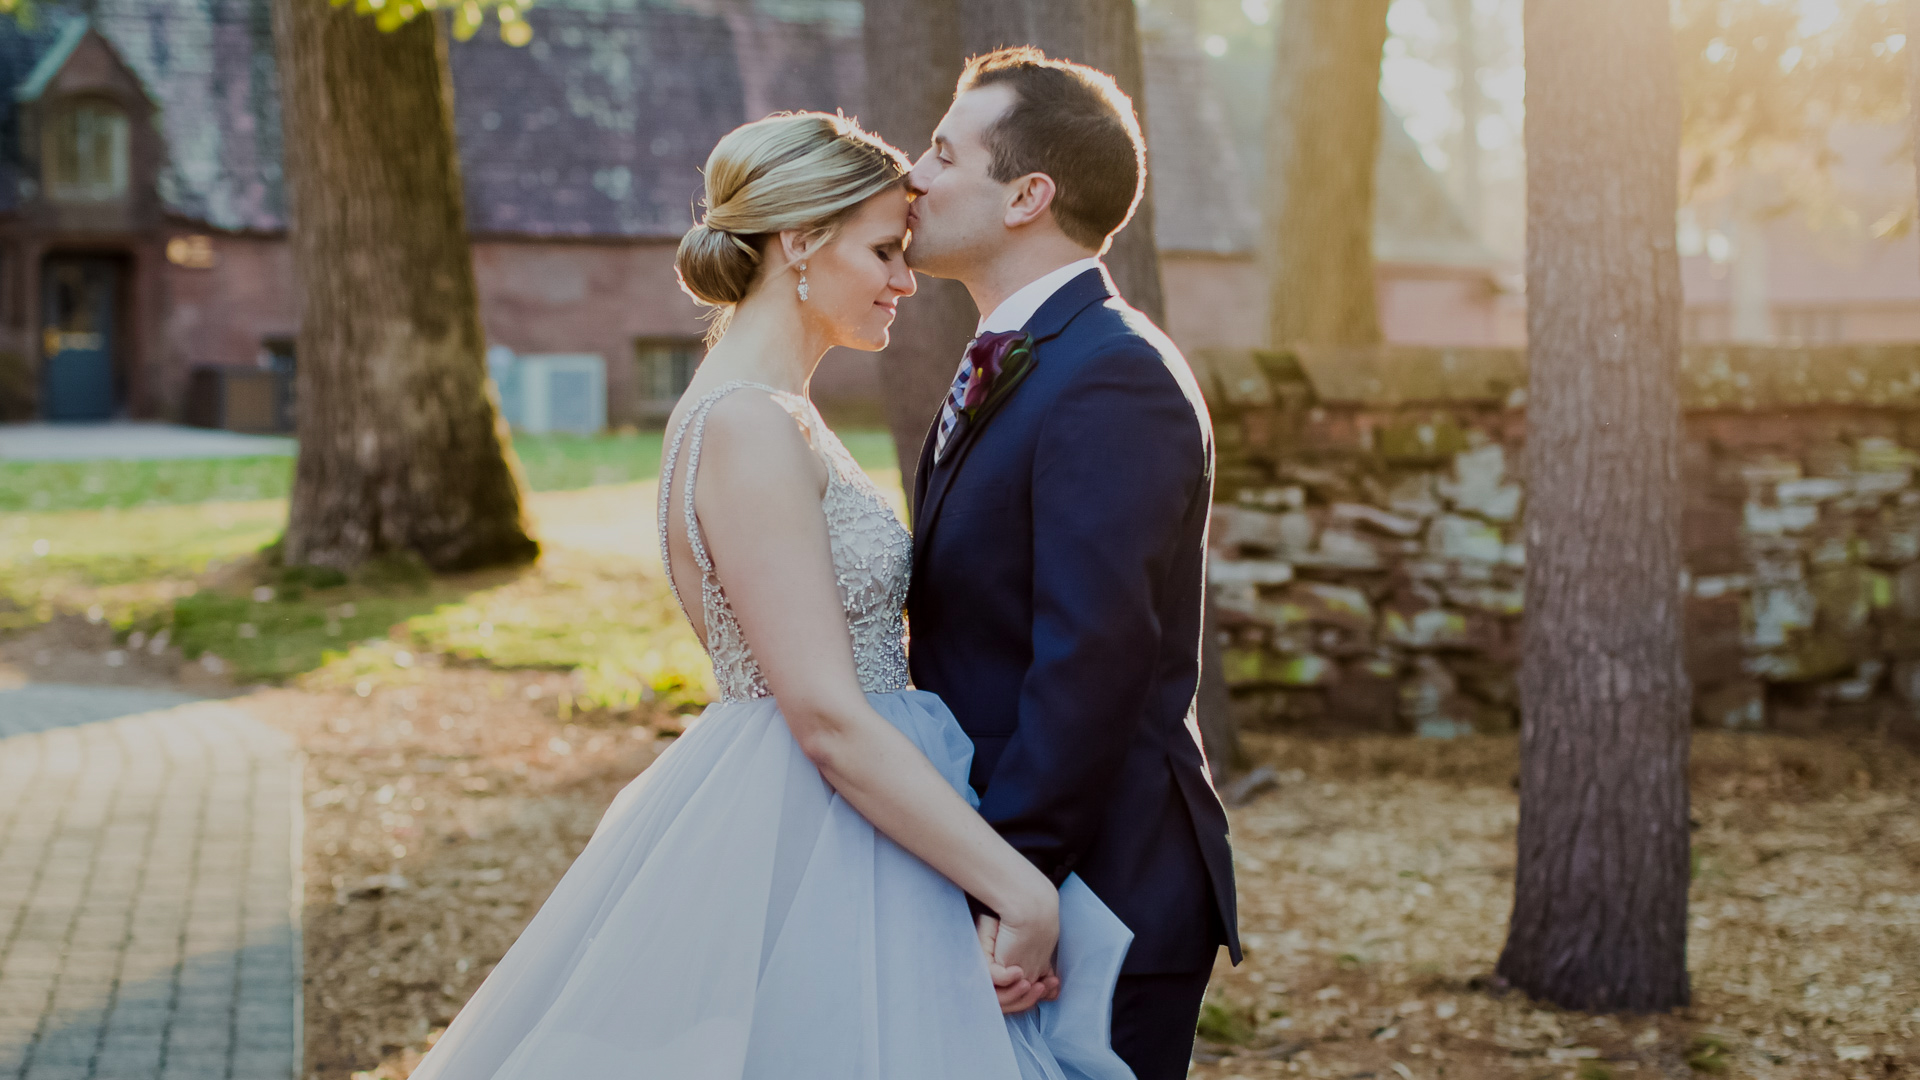 Check portfolios, pricing and availability for wedding photographers in Hartford